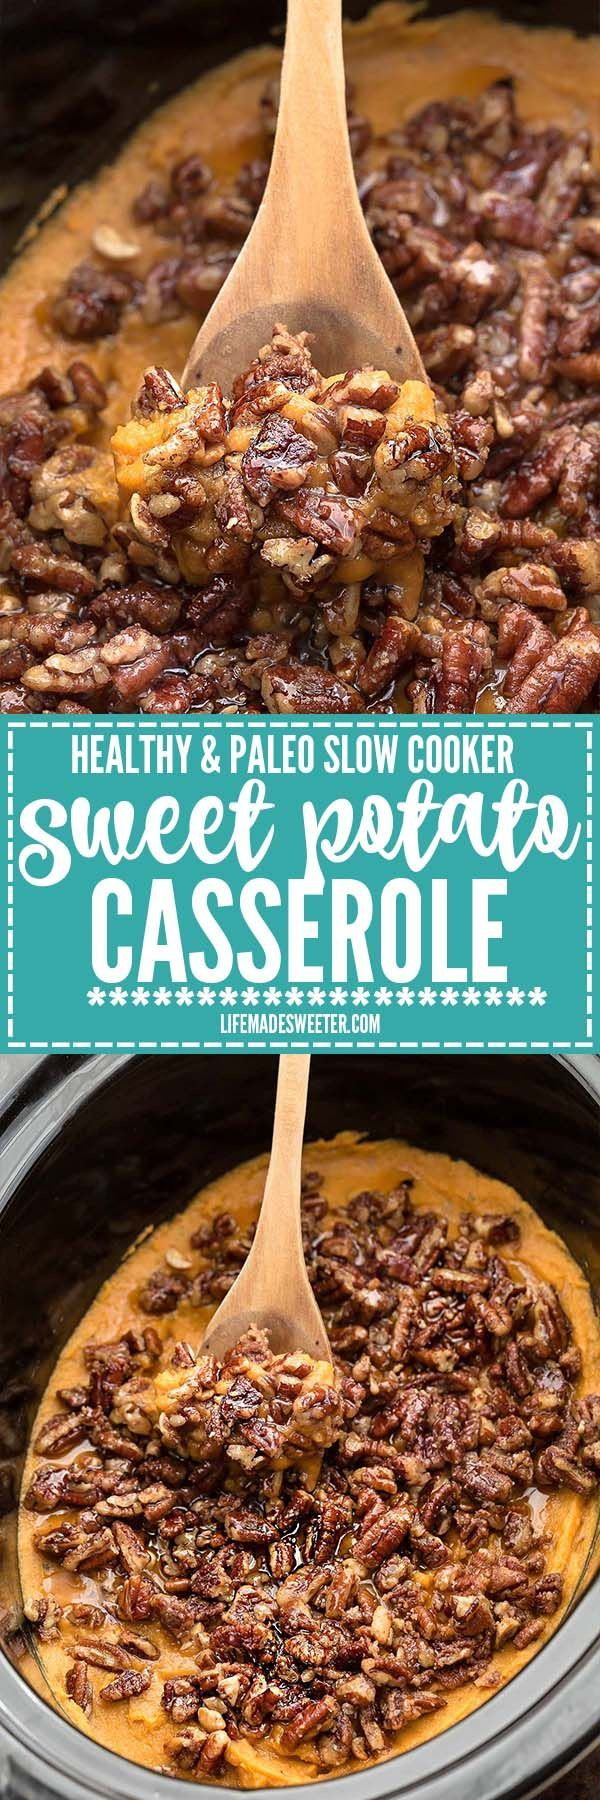 Healthy Paleo Slow Cooker Sweet Potato Casserole is the perfect easy side dish for Thanksgiving and the holidays. Best of all, it's made entirely in the crock pot, saving you valuable oven space. No p